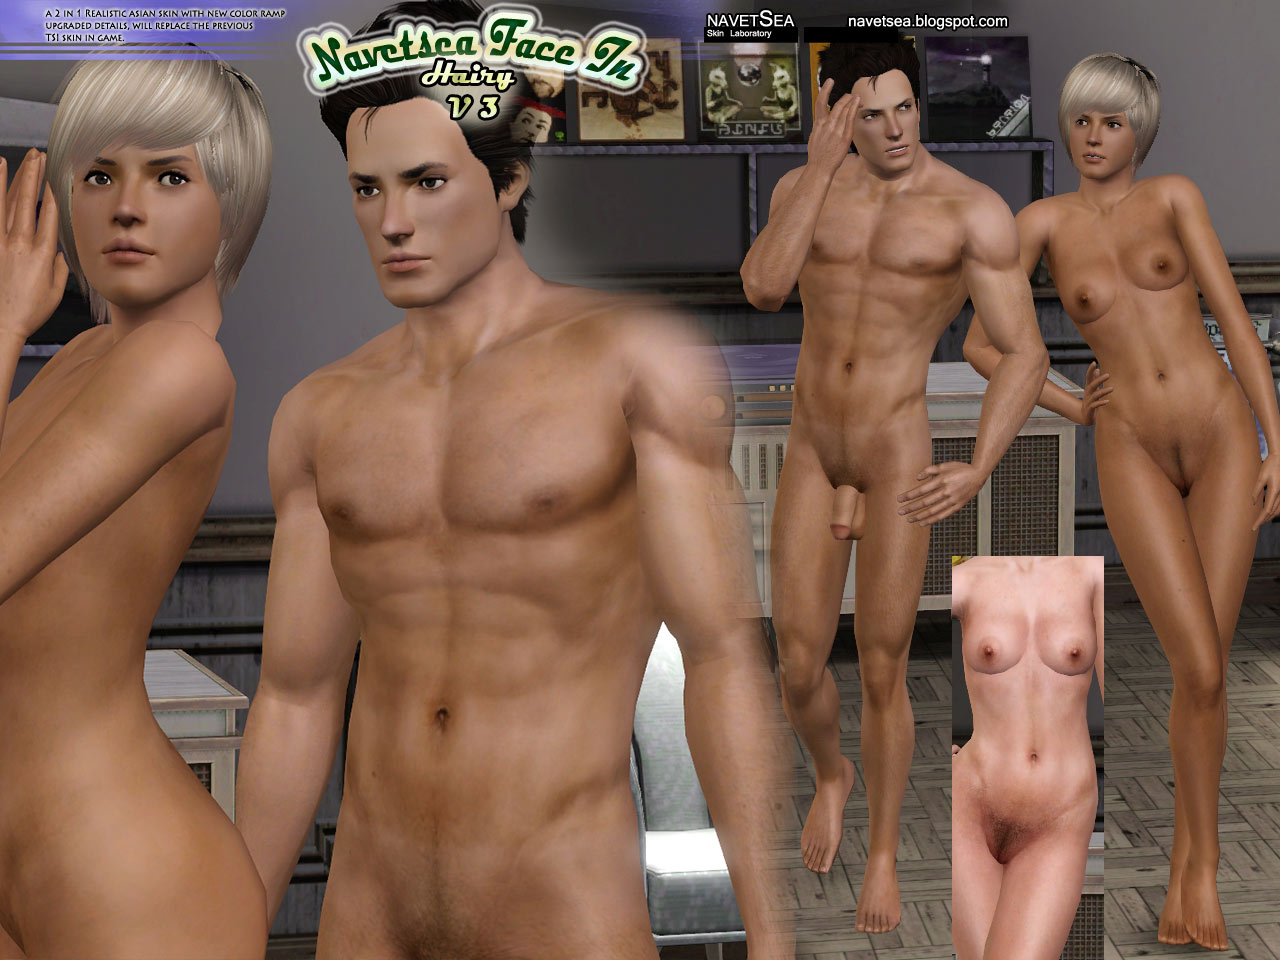 Nude mods for sims 3 exploited image